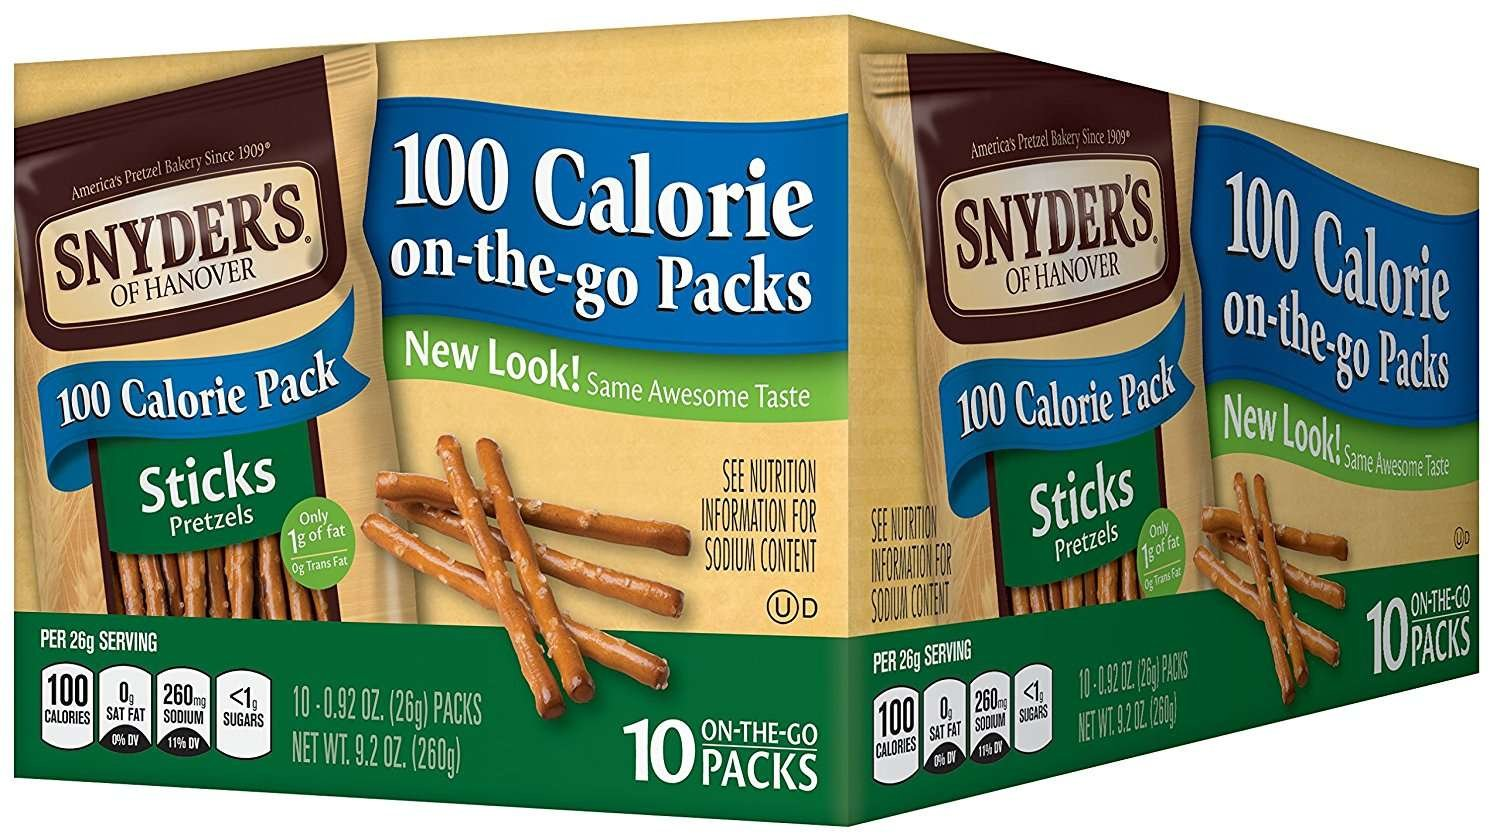 Snyder's Of Hanover Pretzel Sticks, 100 Calorie Bags, 10 Count by Snyder's Of Hanover